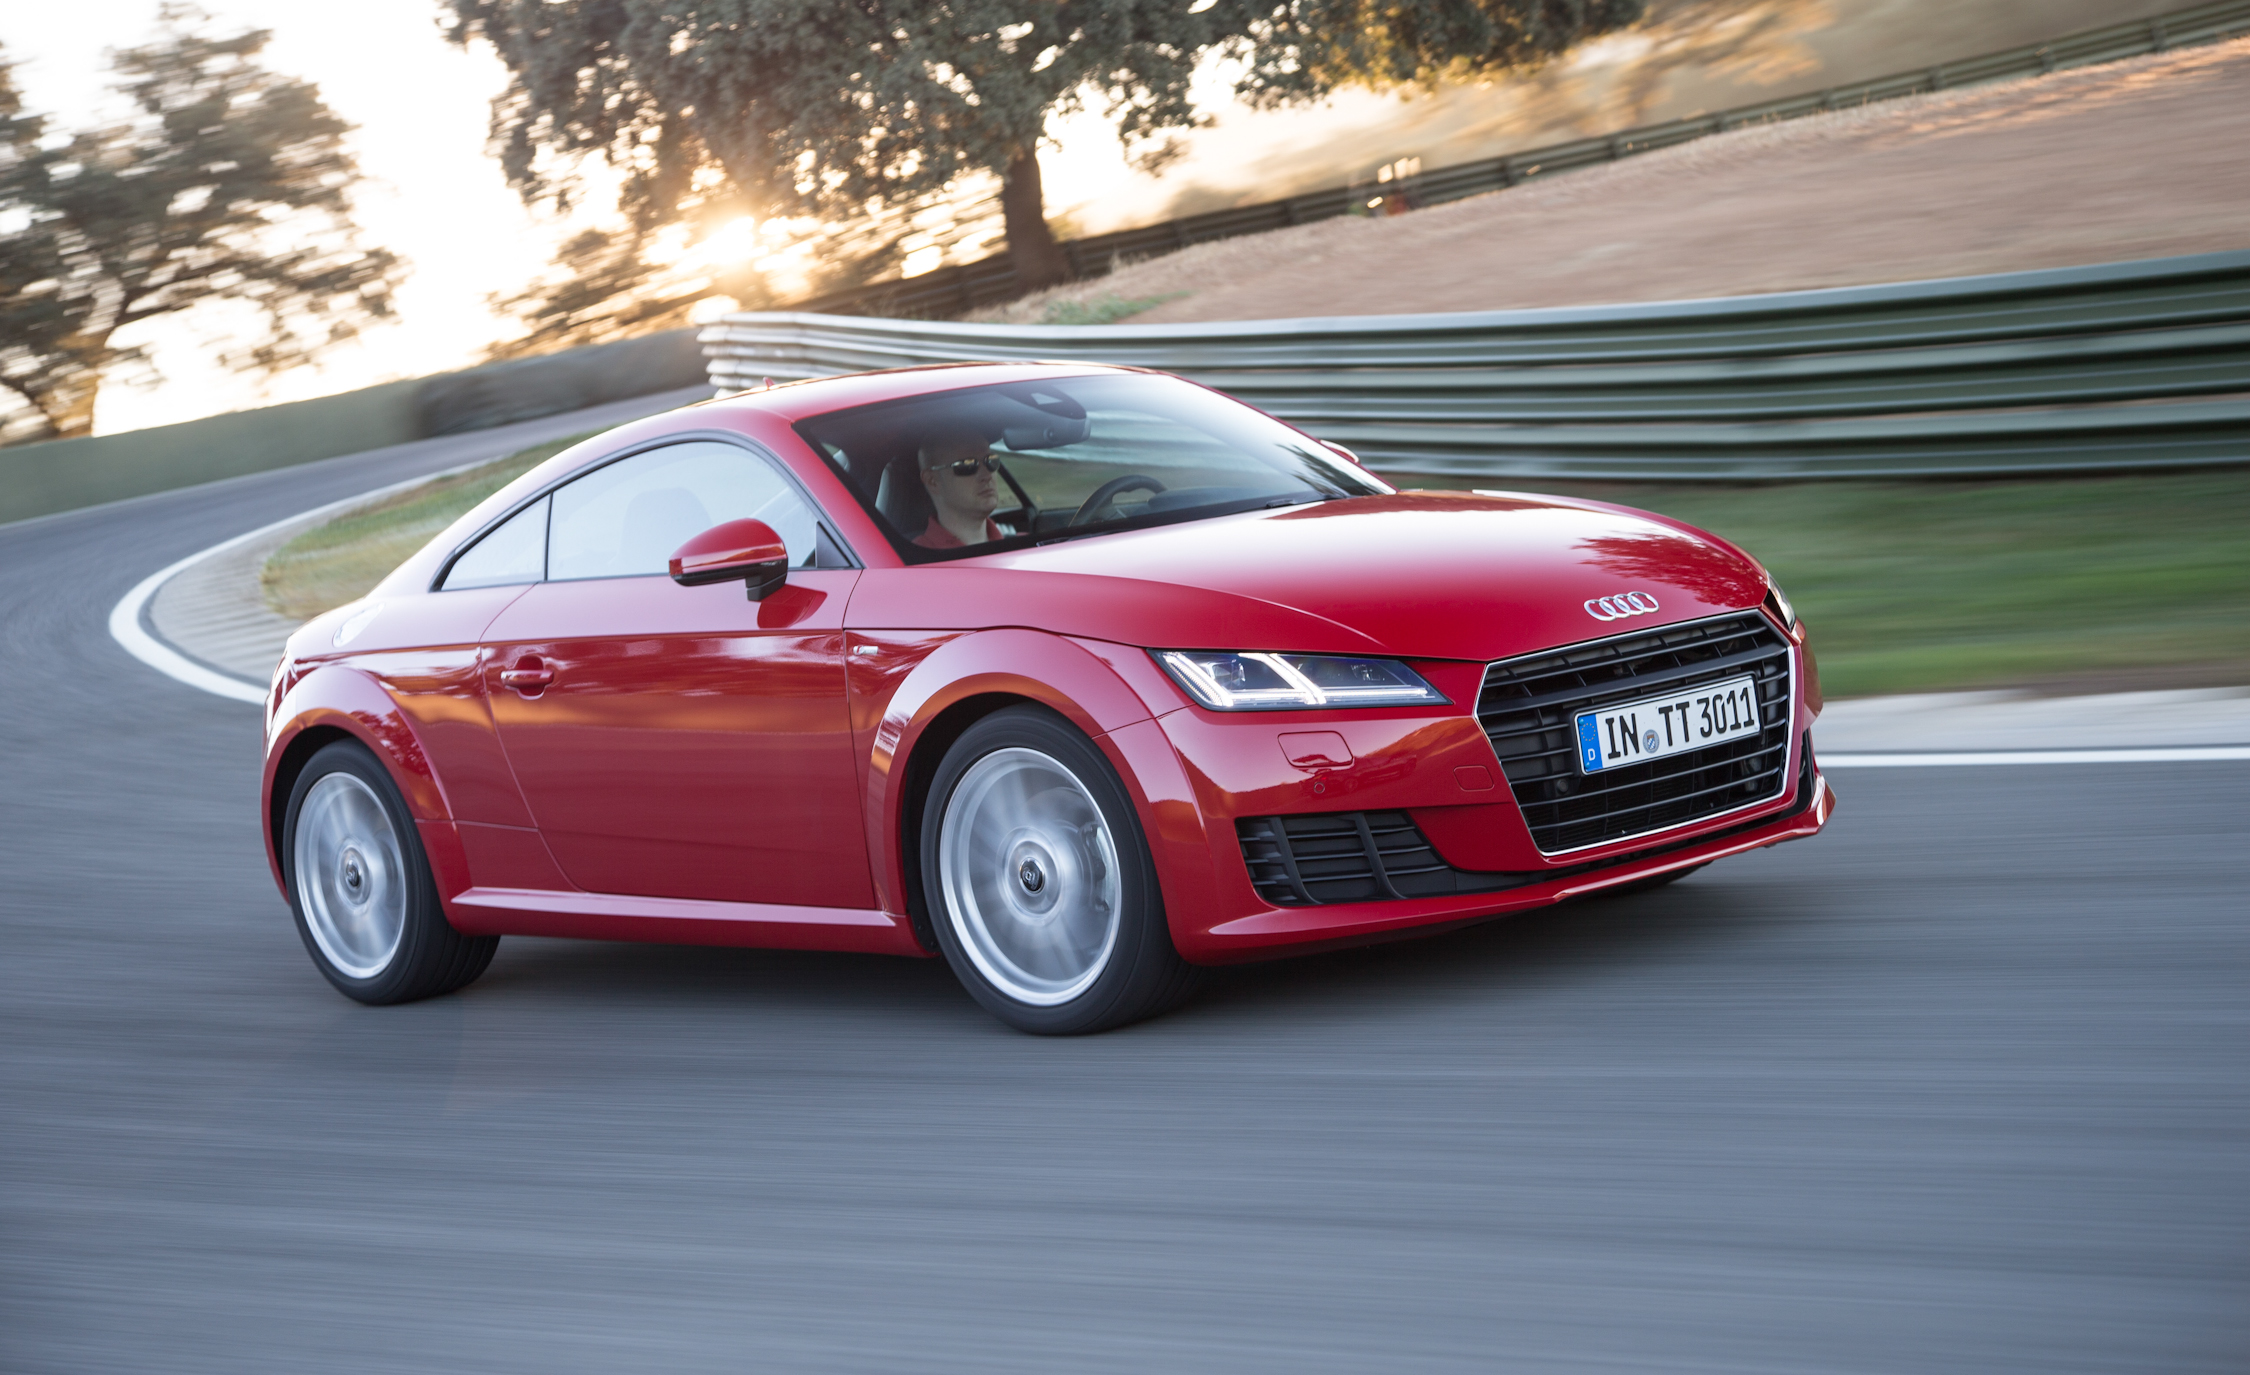 2016 Audi TT / TTS Pictures Gallery (41 Images)